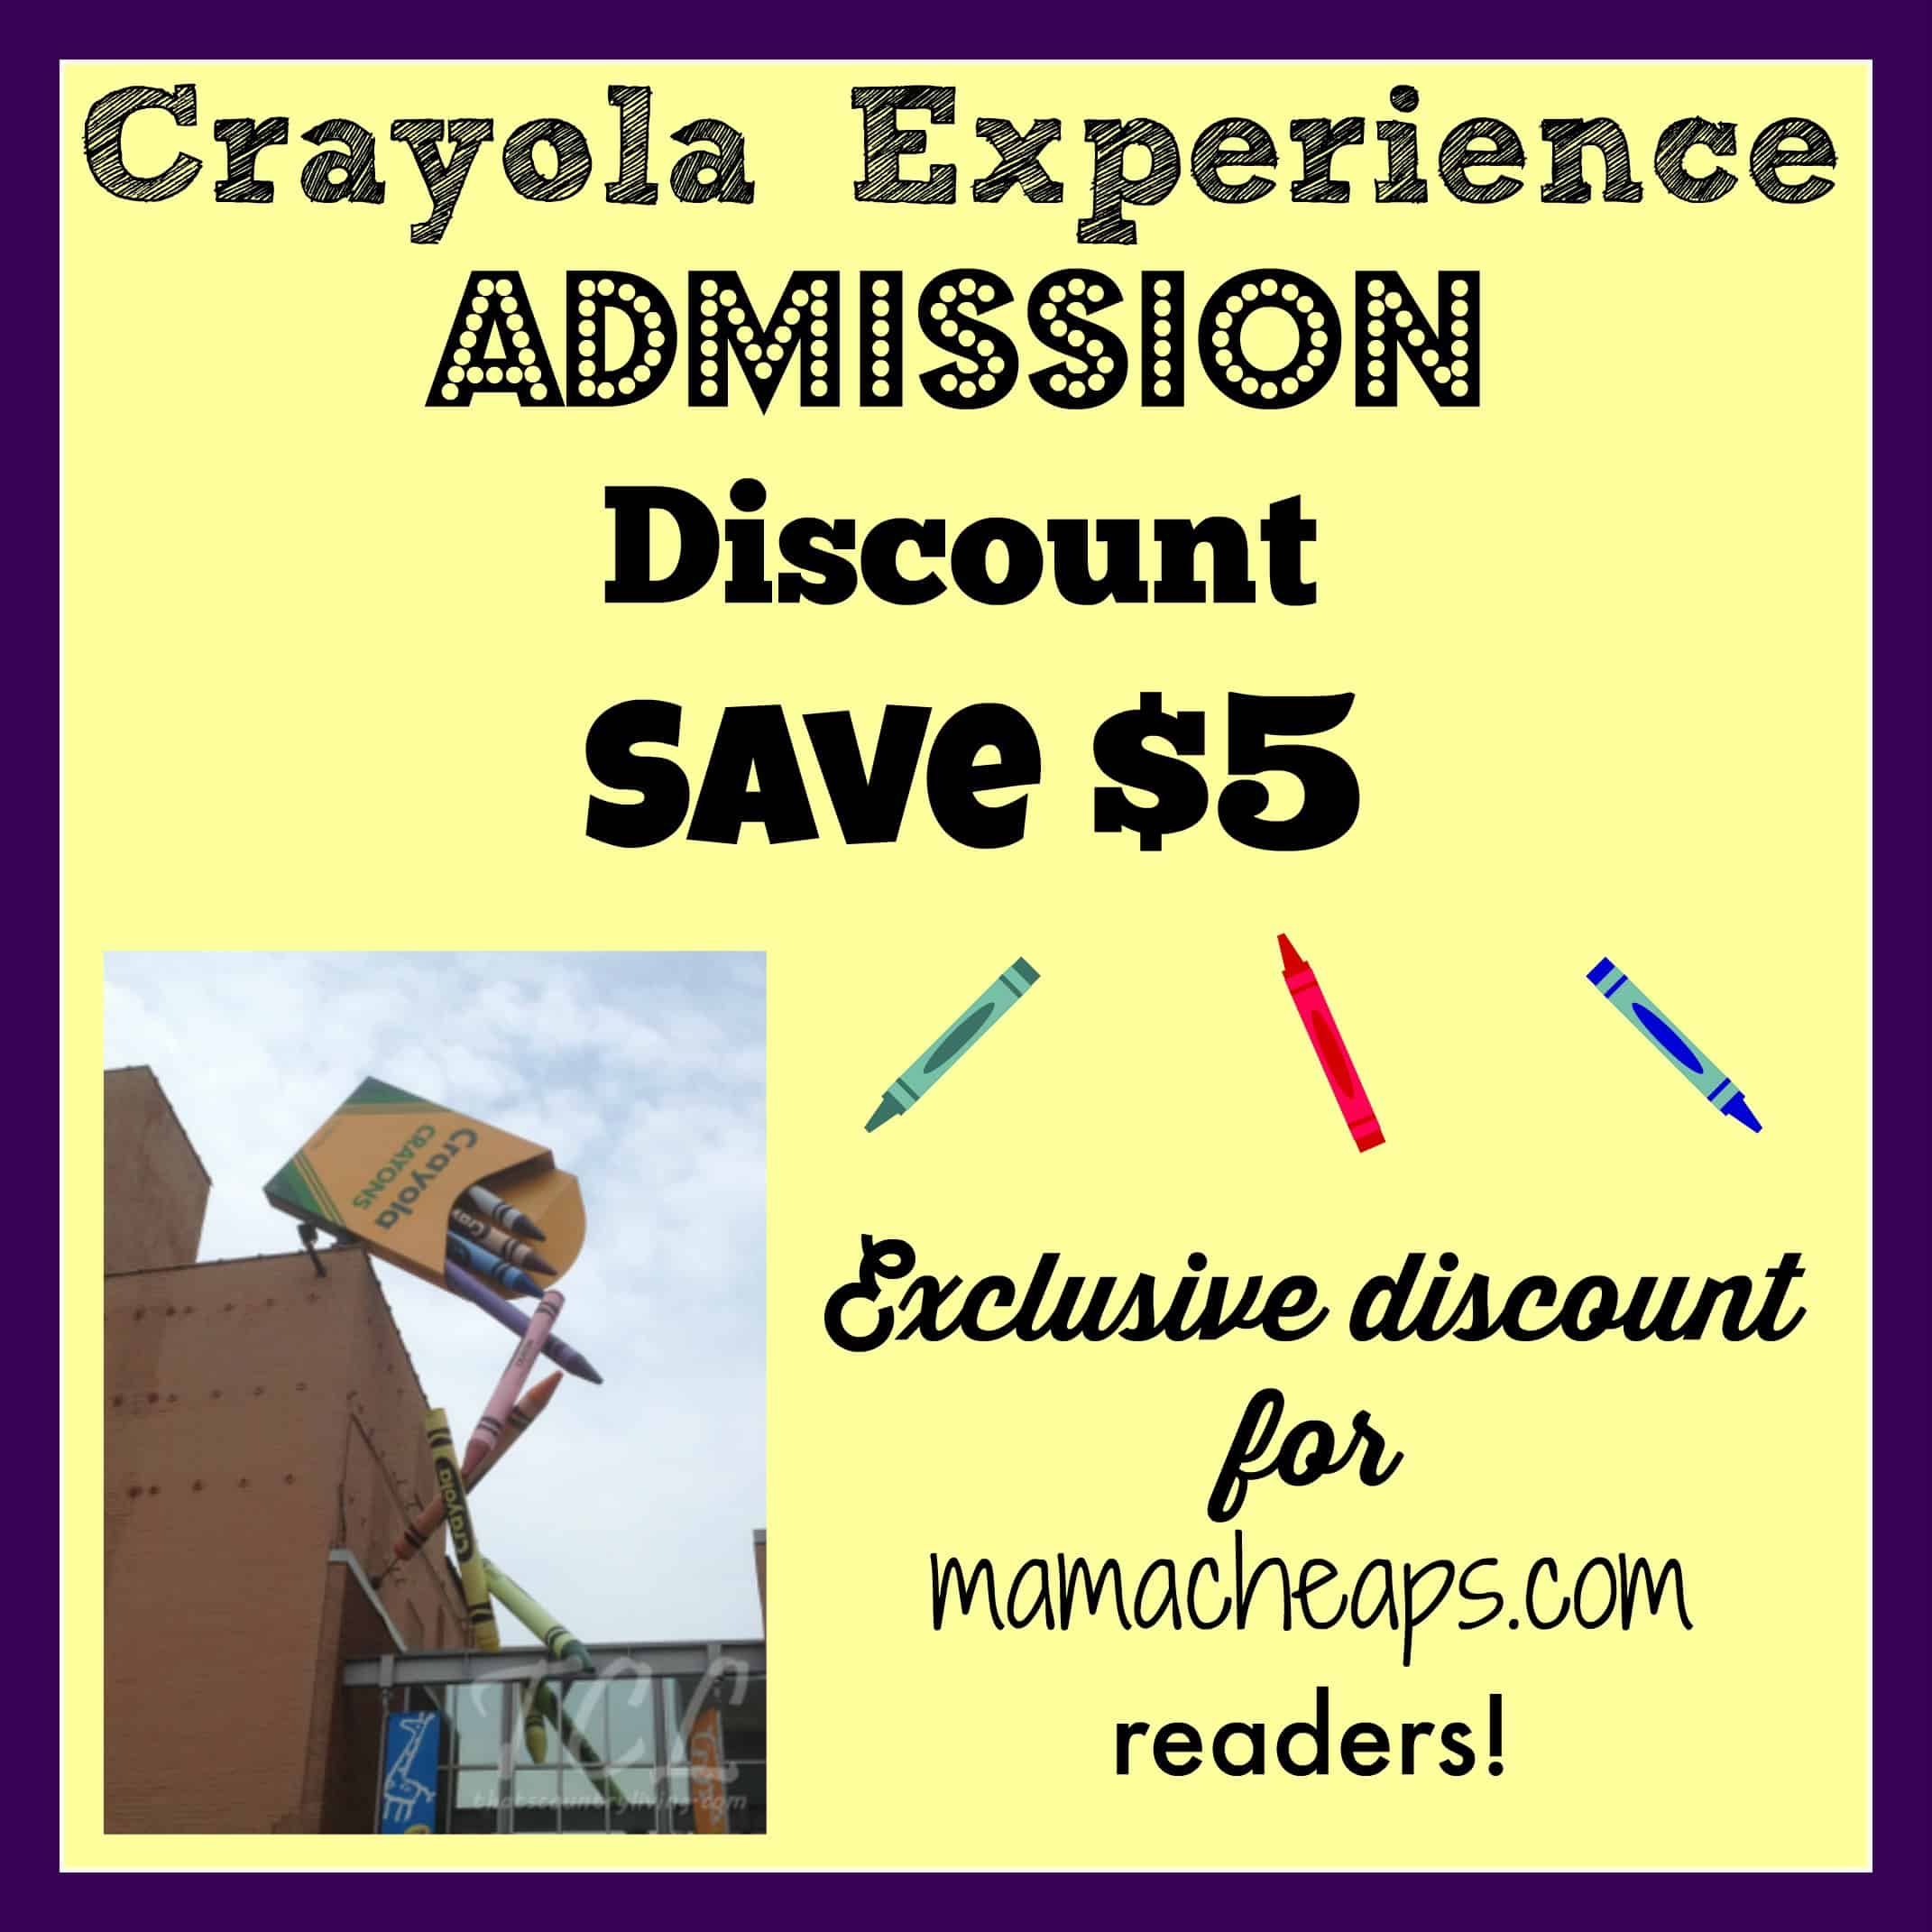 Crayola Experience Discount Tickets Macys 1 Day Sale